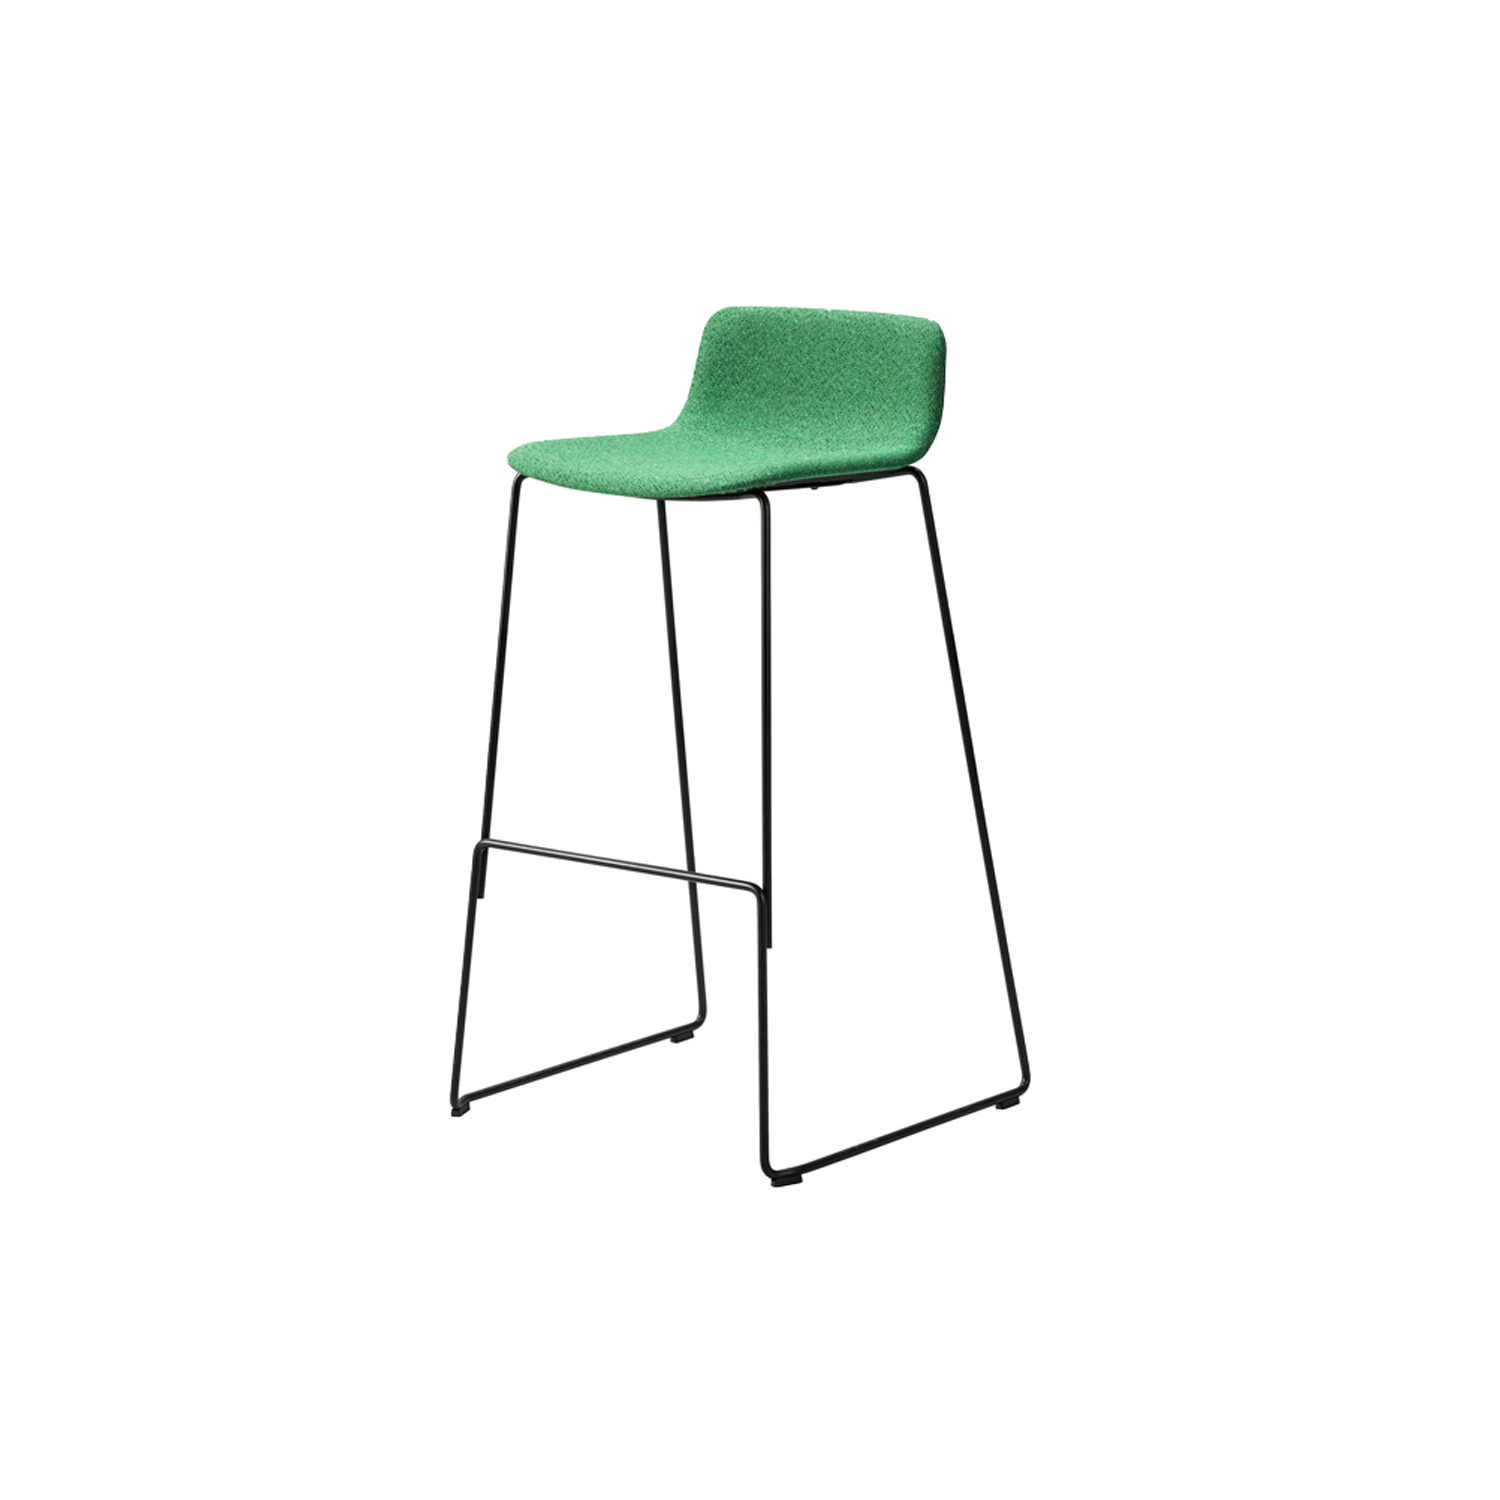 Pato Sledge Stool Fully Upholstered  - Pato is a carefully crafted multipurpose chair in eco-friendly polypropylene that can be used outdoors. The chair is available with a range of optional features including coupling. The chair can be tuned from basic to exclusive with optional upholstery.  Pato is a prime example of our focus on sustainability and protecting the environment, reflected in a chair that's 100% renewable and recyclable. All components can be incorporated into future furniture production, thus contributing to a circular economy by minimising the use of materials, resources, waste and pollution.   Merging traditional production methods with cutting-edge technology, Pato is a human-centric, highly versatile series of multi-purpose functional furniture that draws on our in-depth experience with materials, immaculate detailing and heritage of fine craftsmanship. Allowing us to apply our high standards of texture, finish and carpentry techniques to an array of materials in addition to wood for products aimed at a mass market.   With its clean lines and curves, Pato echoes the ethos of Danish-Icelandic design duo Welling/Ludvik. Demonstrating their belief that good design has the ability to be interesting, even when reduced to its most simple form. Where anything extraneous is eliminated and every detail has a purpose.   Together we spent nearly three years developing the shell structure to have a soft surface that's also wear and tear resistant. Enhancing the chair's ability to optimally conform to the user's body is a subtle beveled edge. A technique from classic cabinetmaking, which gives the chair a sense of handcrafted finesse. Each Pato is detailed and finished by hand by our highly skilled crafts people, who refine the beveled edge and the silky, resilient surface. Setting a new standard for the execution and finish of polypropylene.   Since the success of its initial launch, we've expanded Pato into an extensive collection of variants, featuring arm